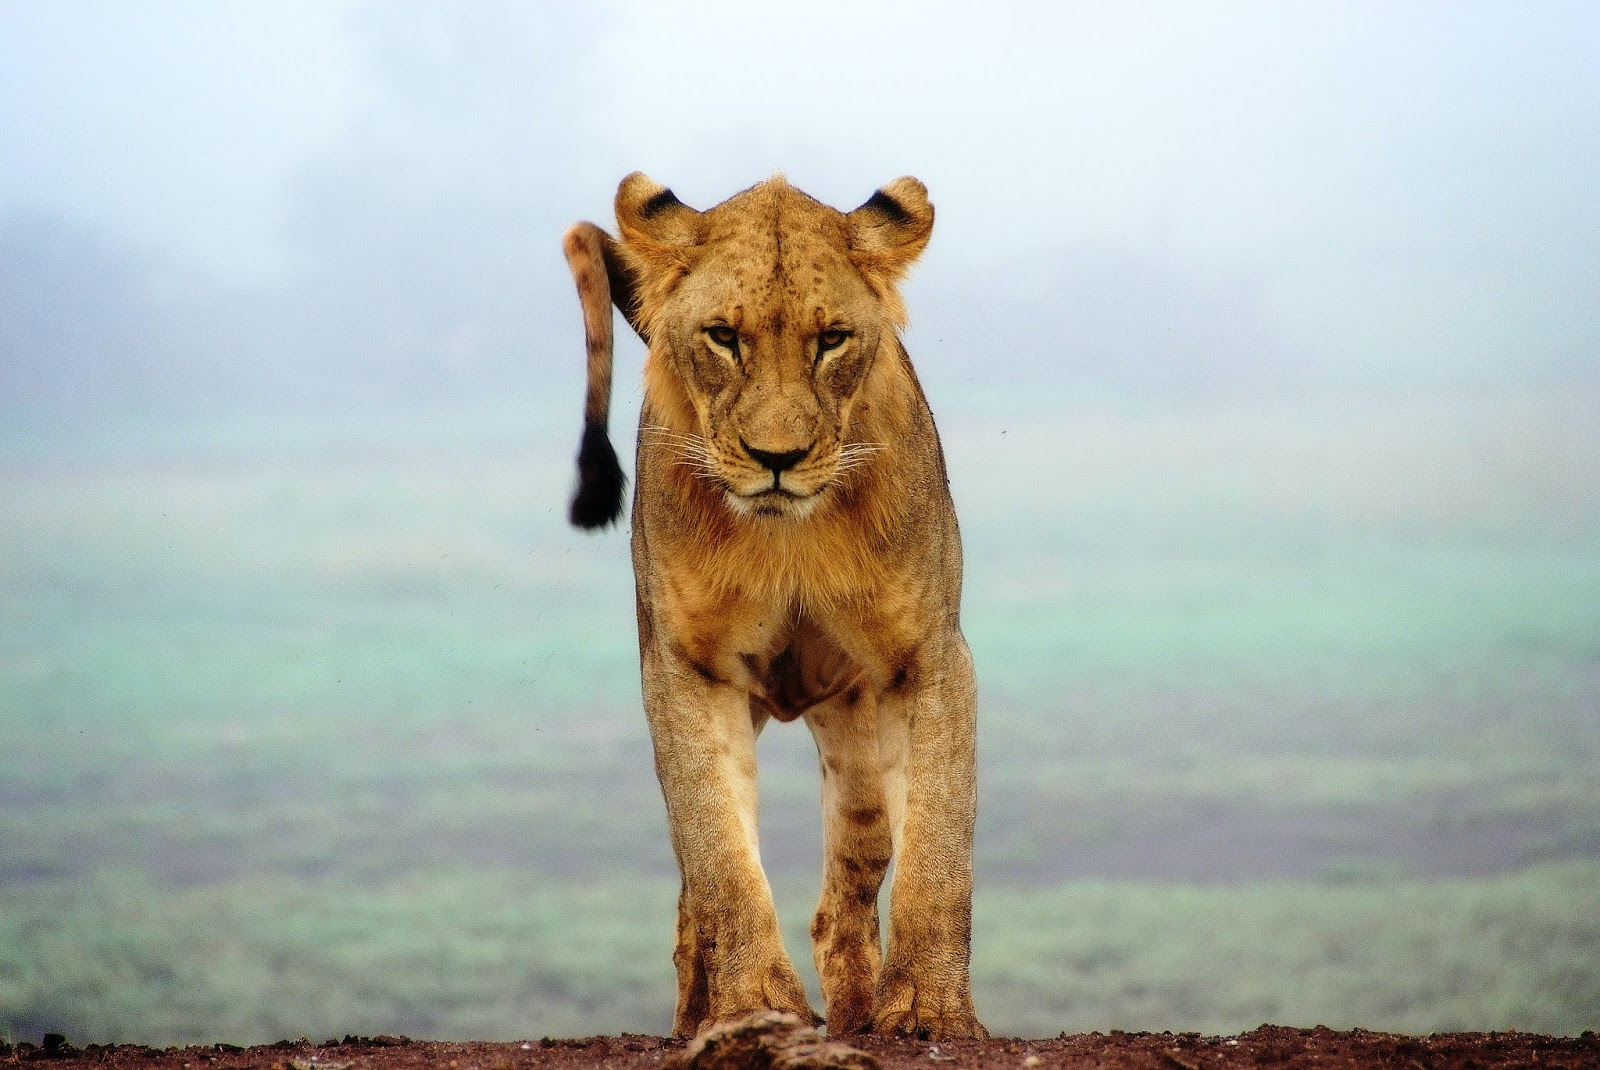 Lioness running towards in pride images